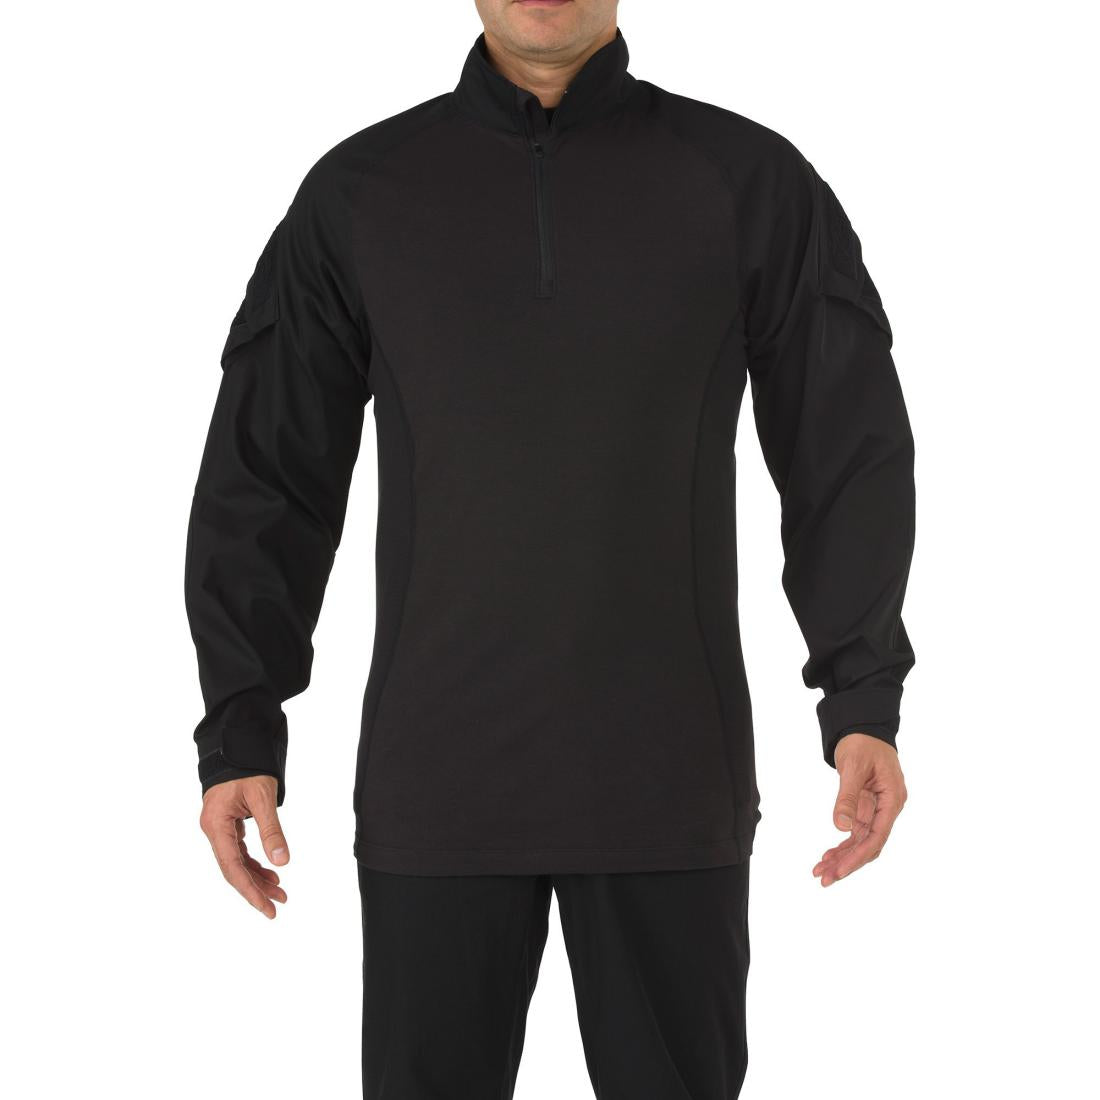 5.11 Tactical 72194 Men Rapid Assault Shirt Black